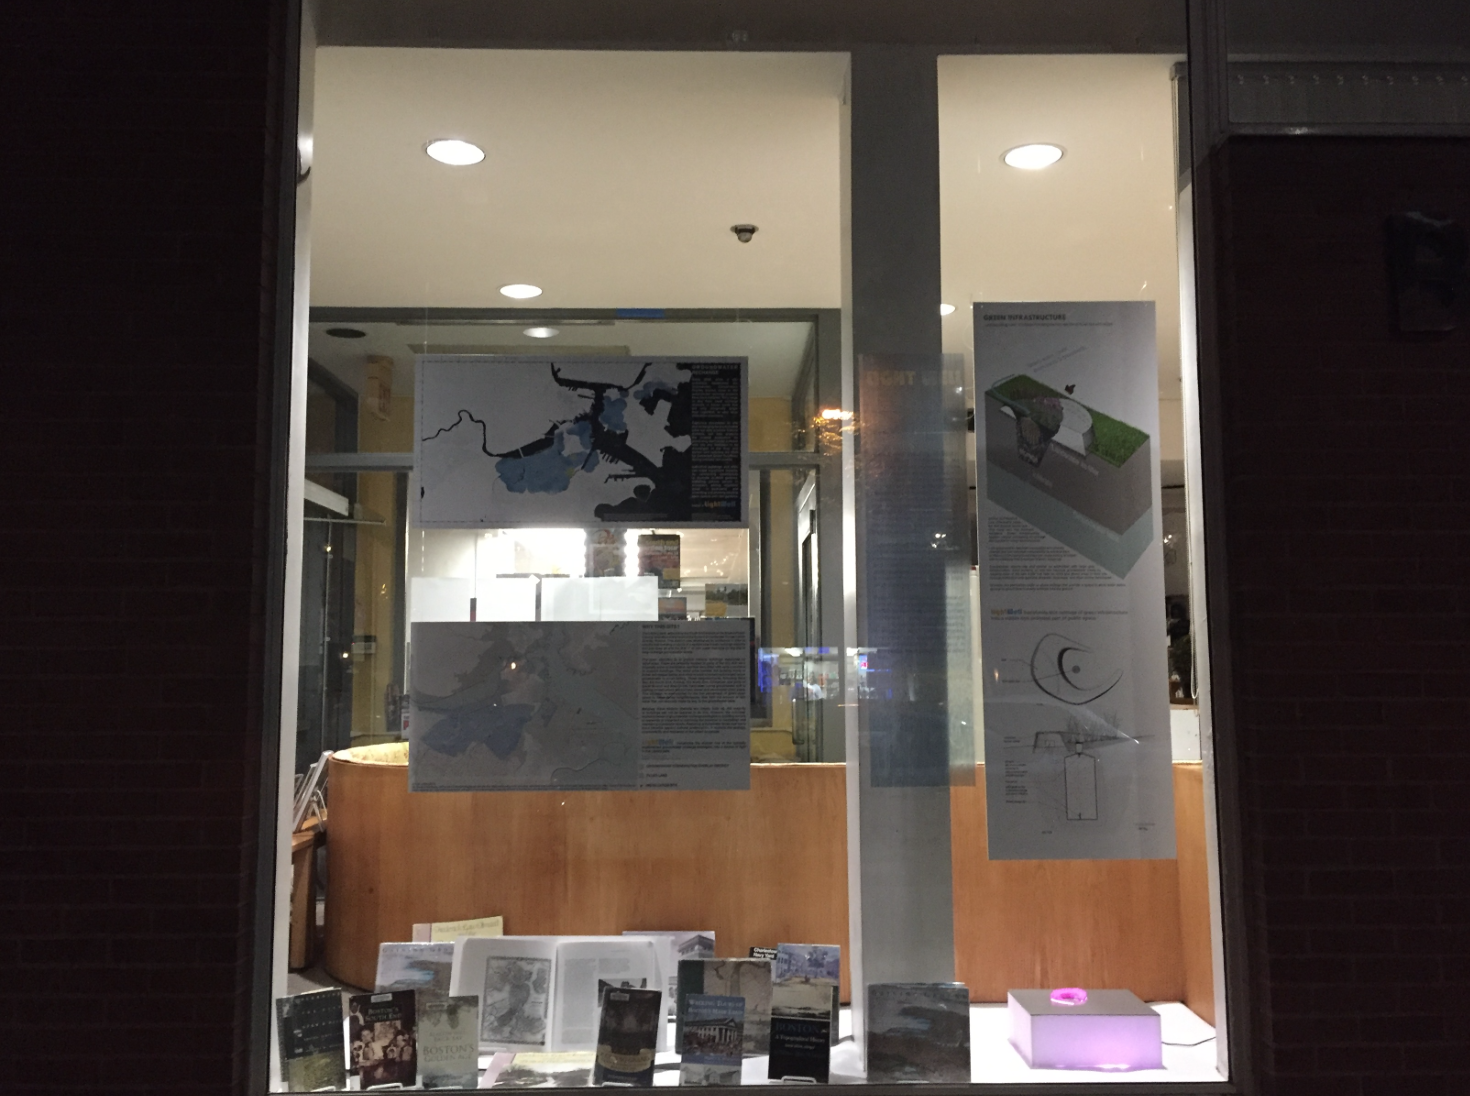 SE library's window display at night, as seen from Tremont Street